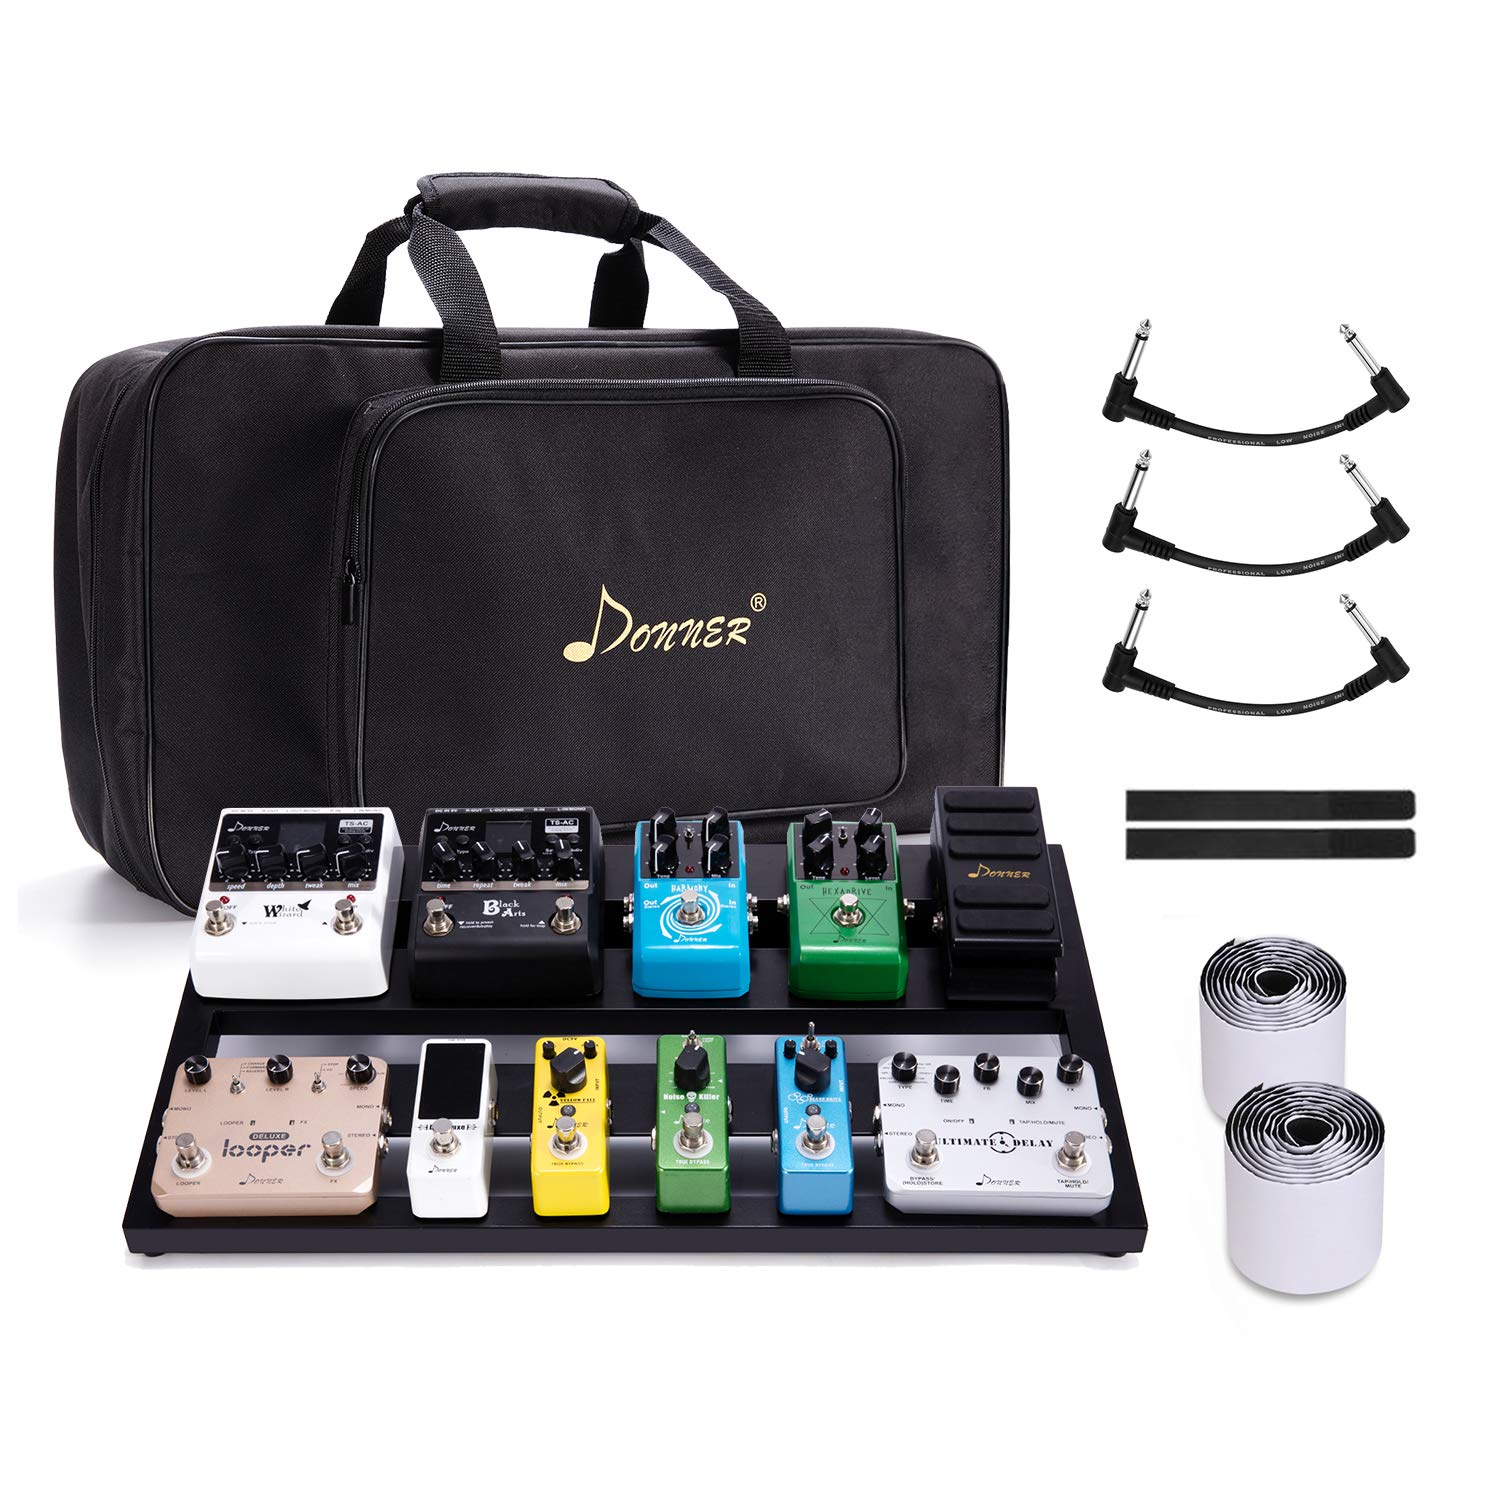 Donner Guitar Pedal Board Case DB-3 Aluminium Pedalboard 20'' x 11.4'' x 4'' with Bag by Donner